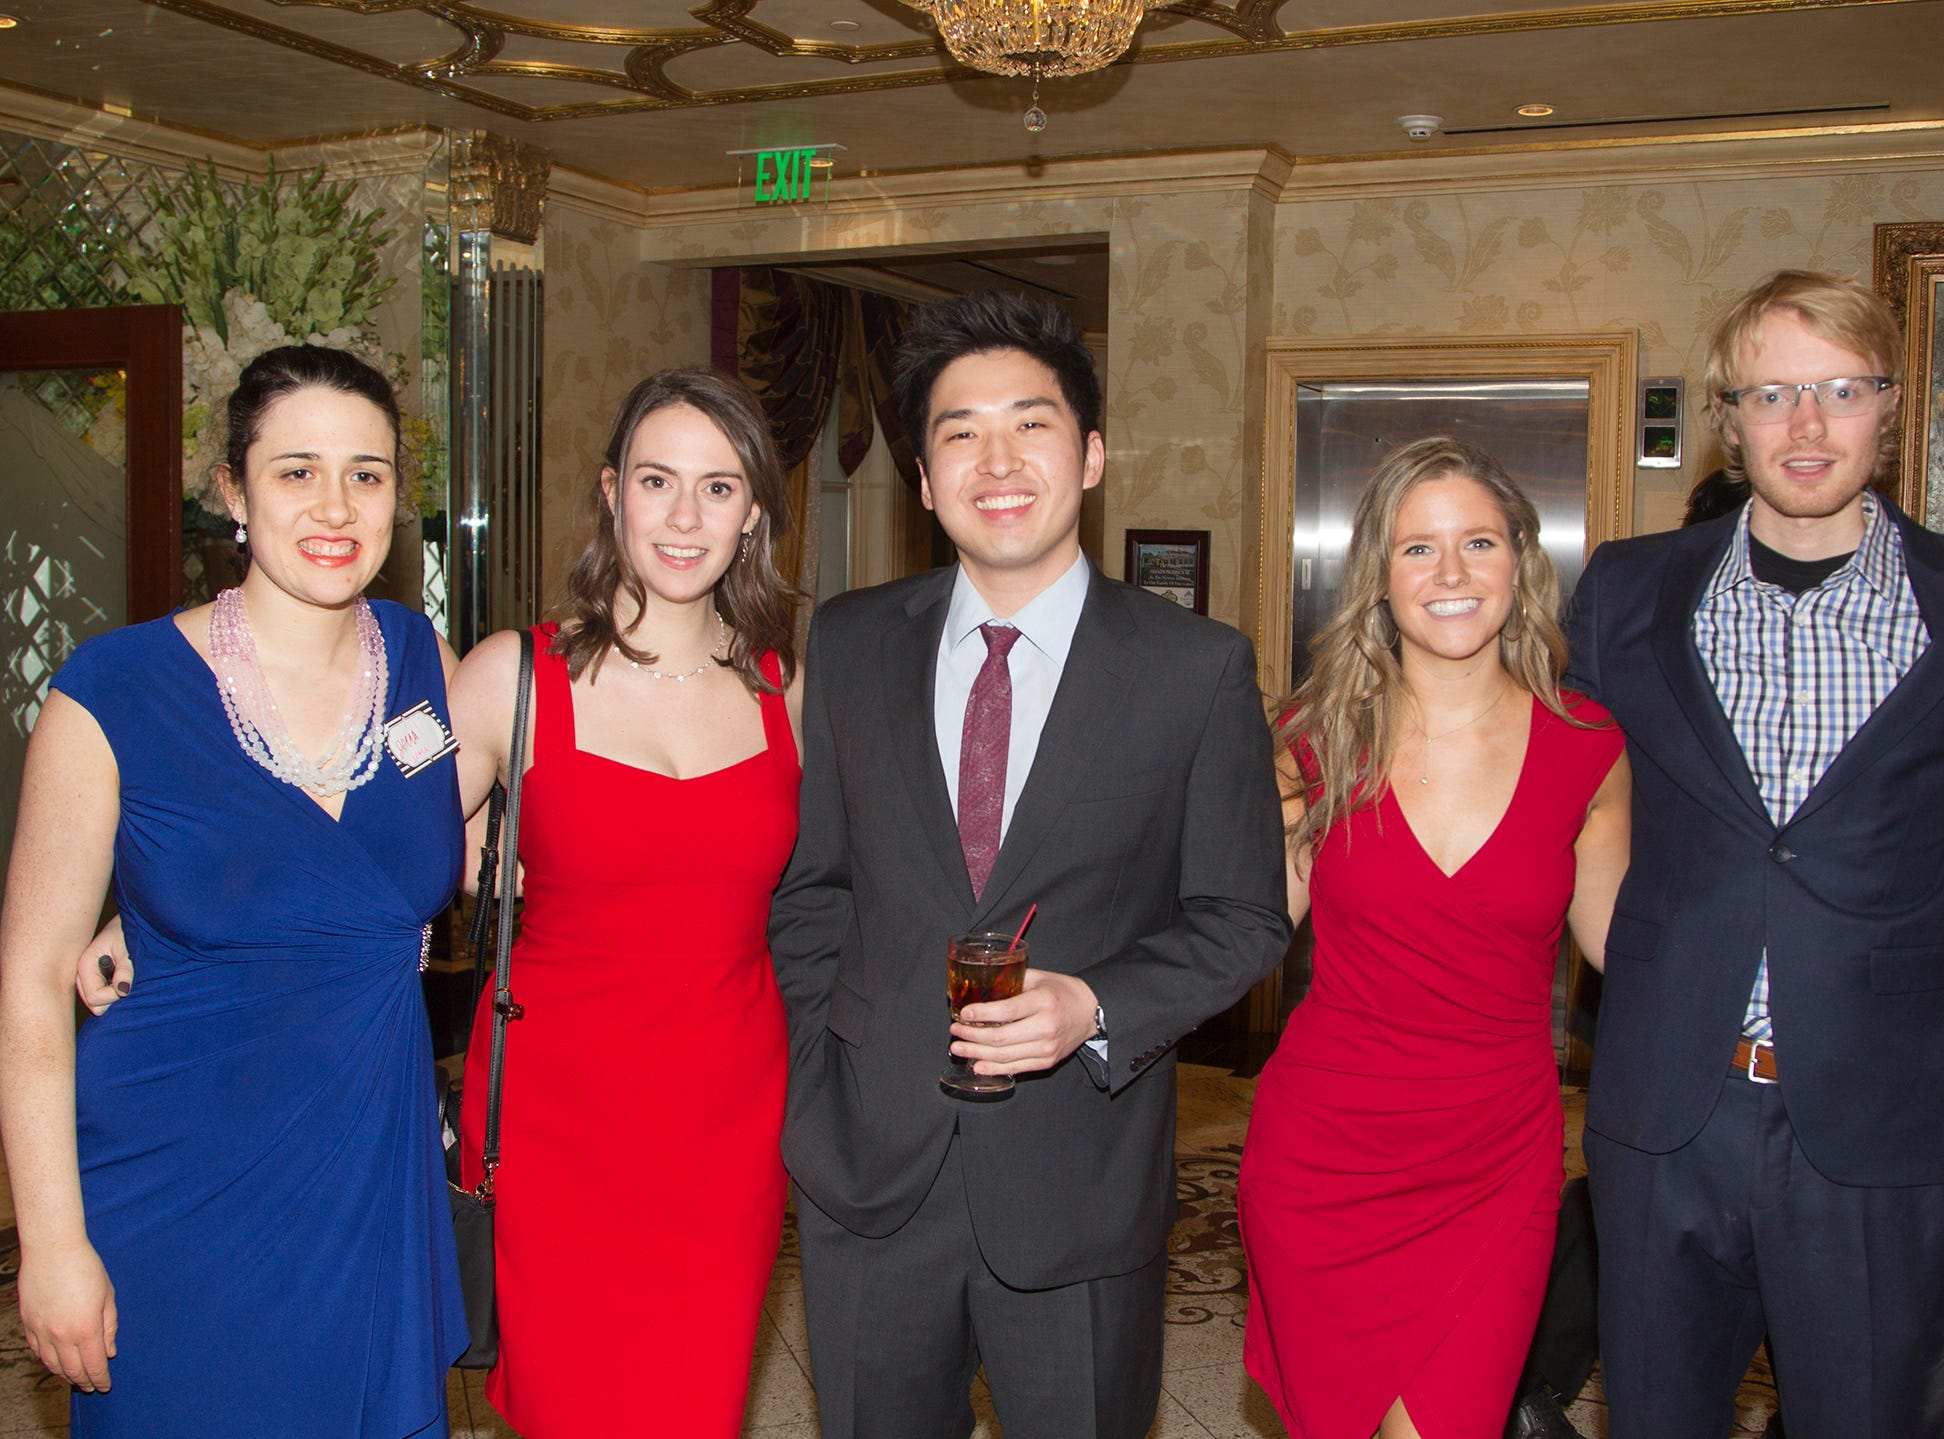 Jenna, Lisa, Jun, Ashlee, Anthony. Institute for Educational Achievement (IEA) held its annual Dinner Dance at Seasons in Washington Township. 02/02/2019